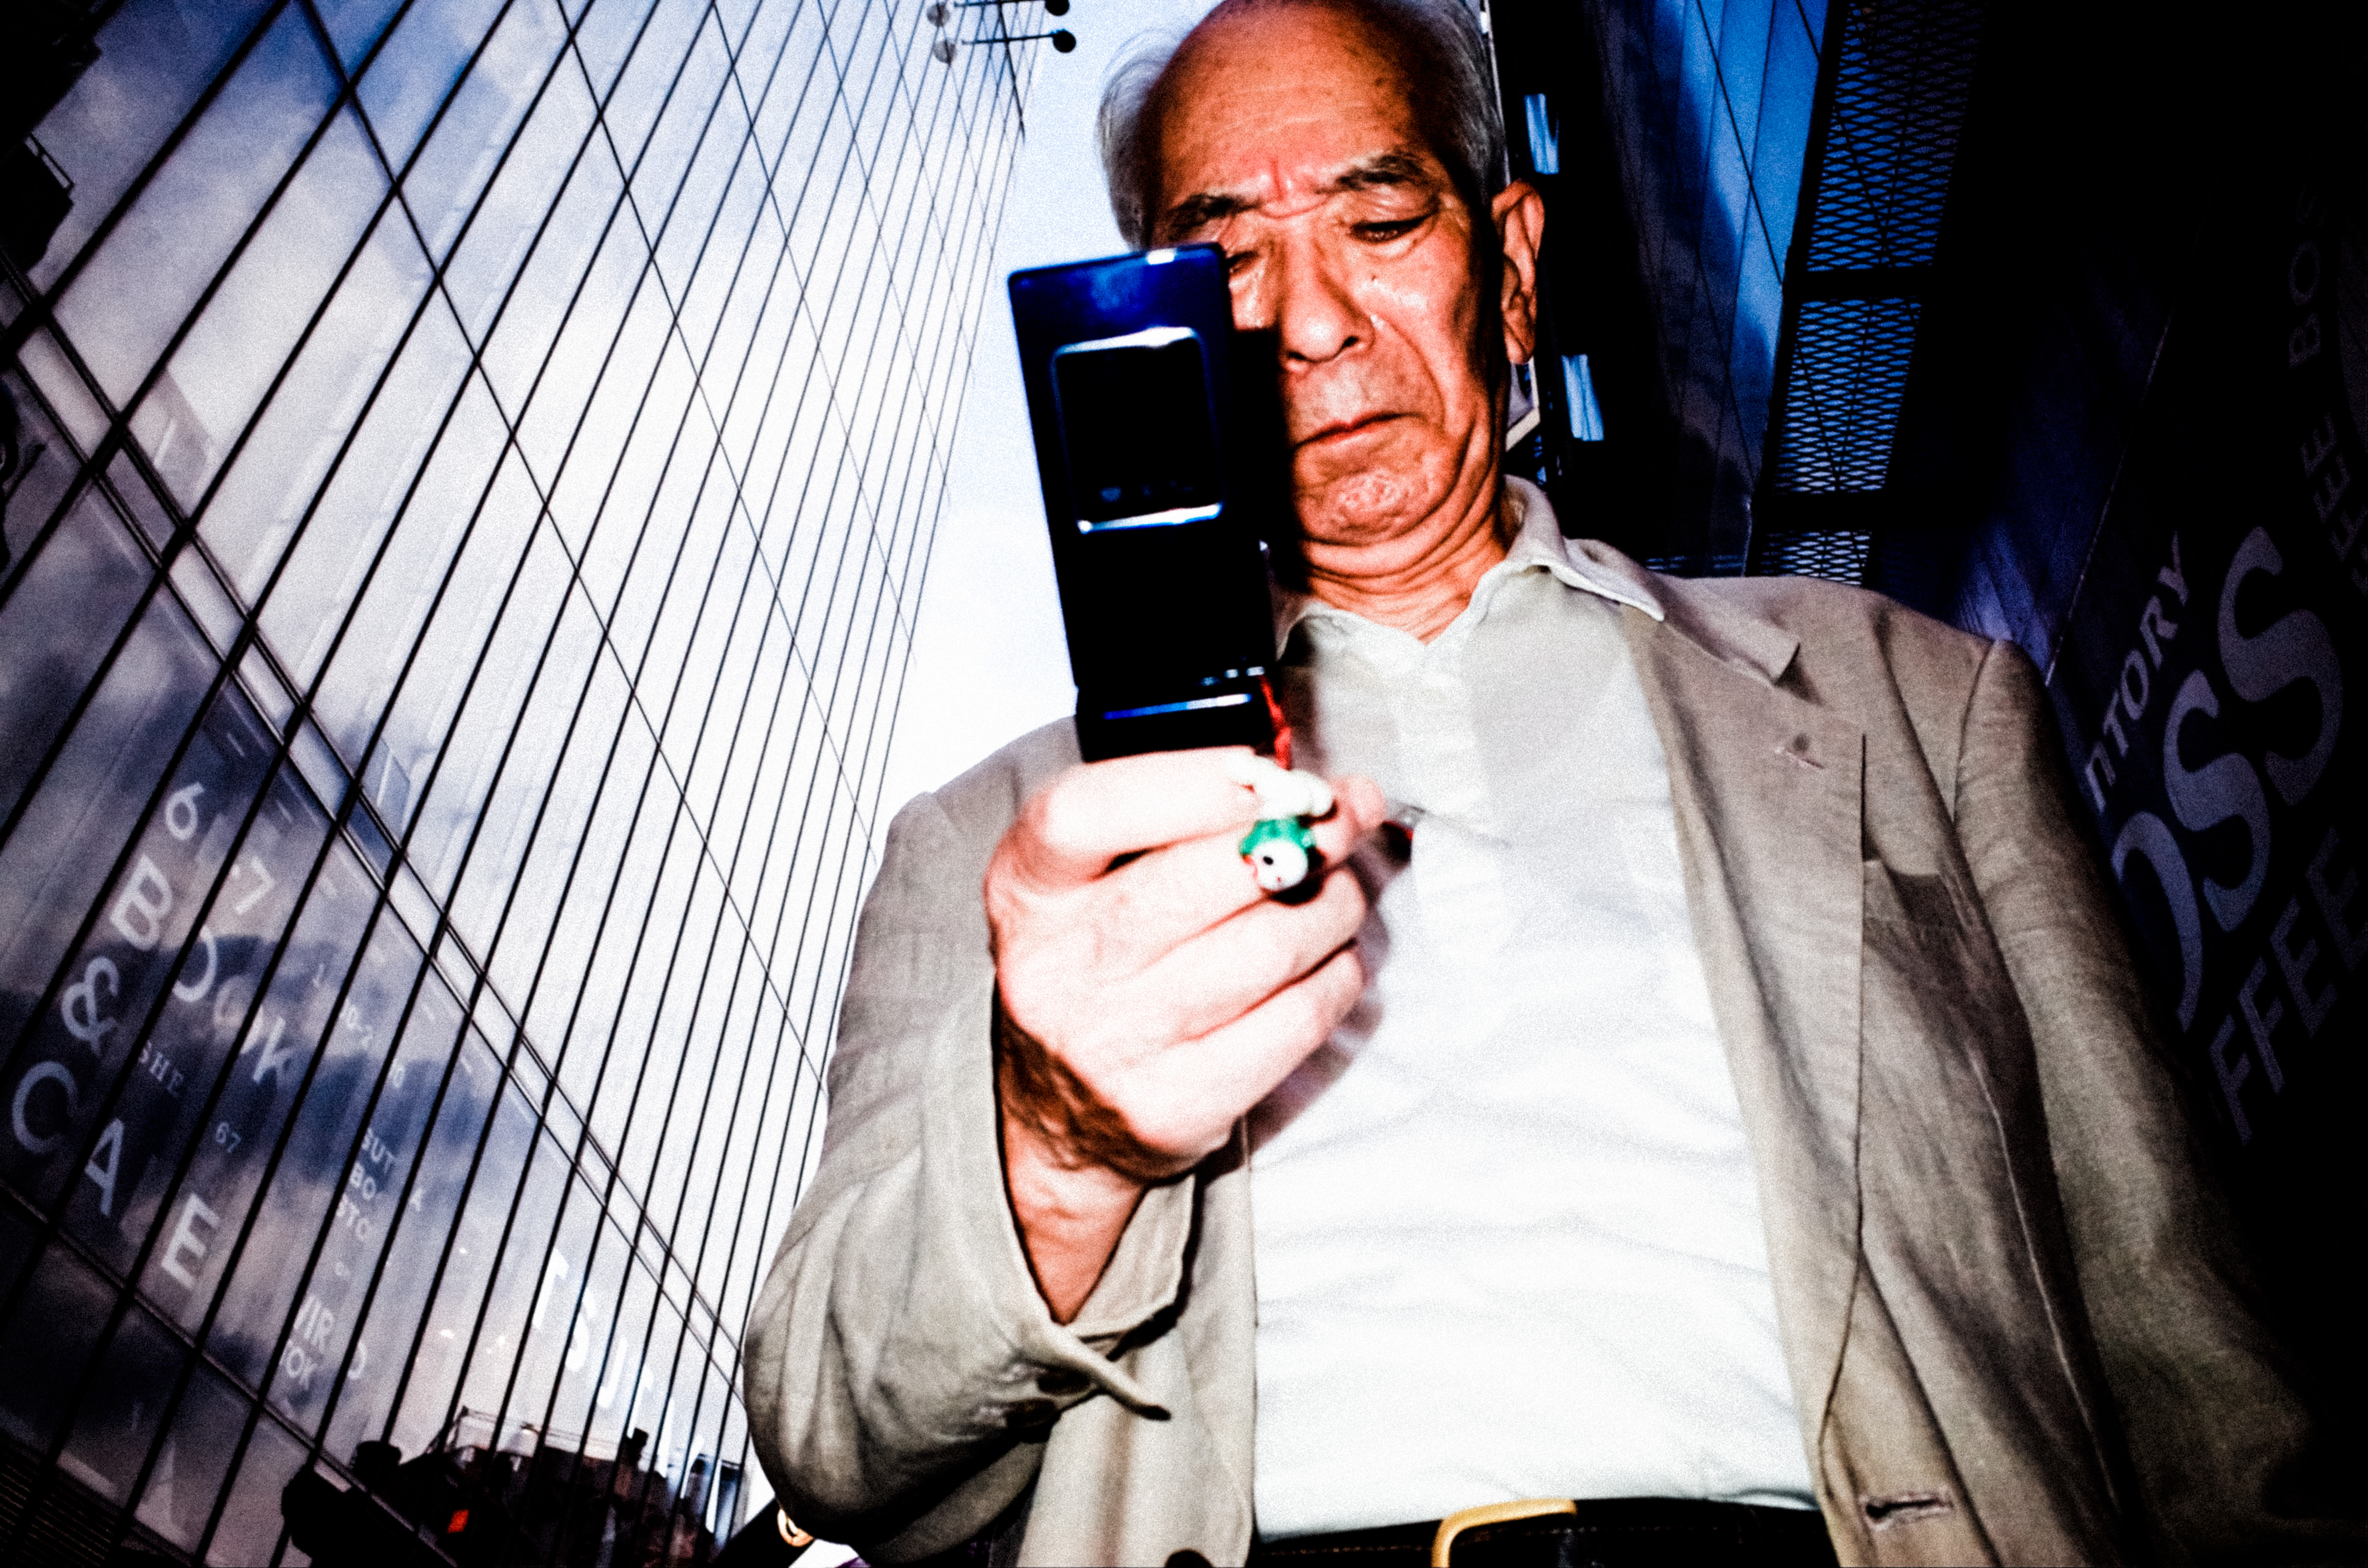 Low angle shot of man with flip phone. Shot with flash. Tokyo, 2017